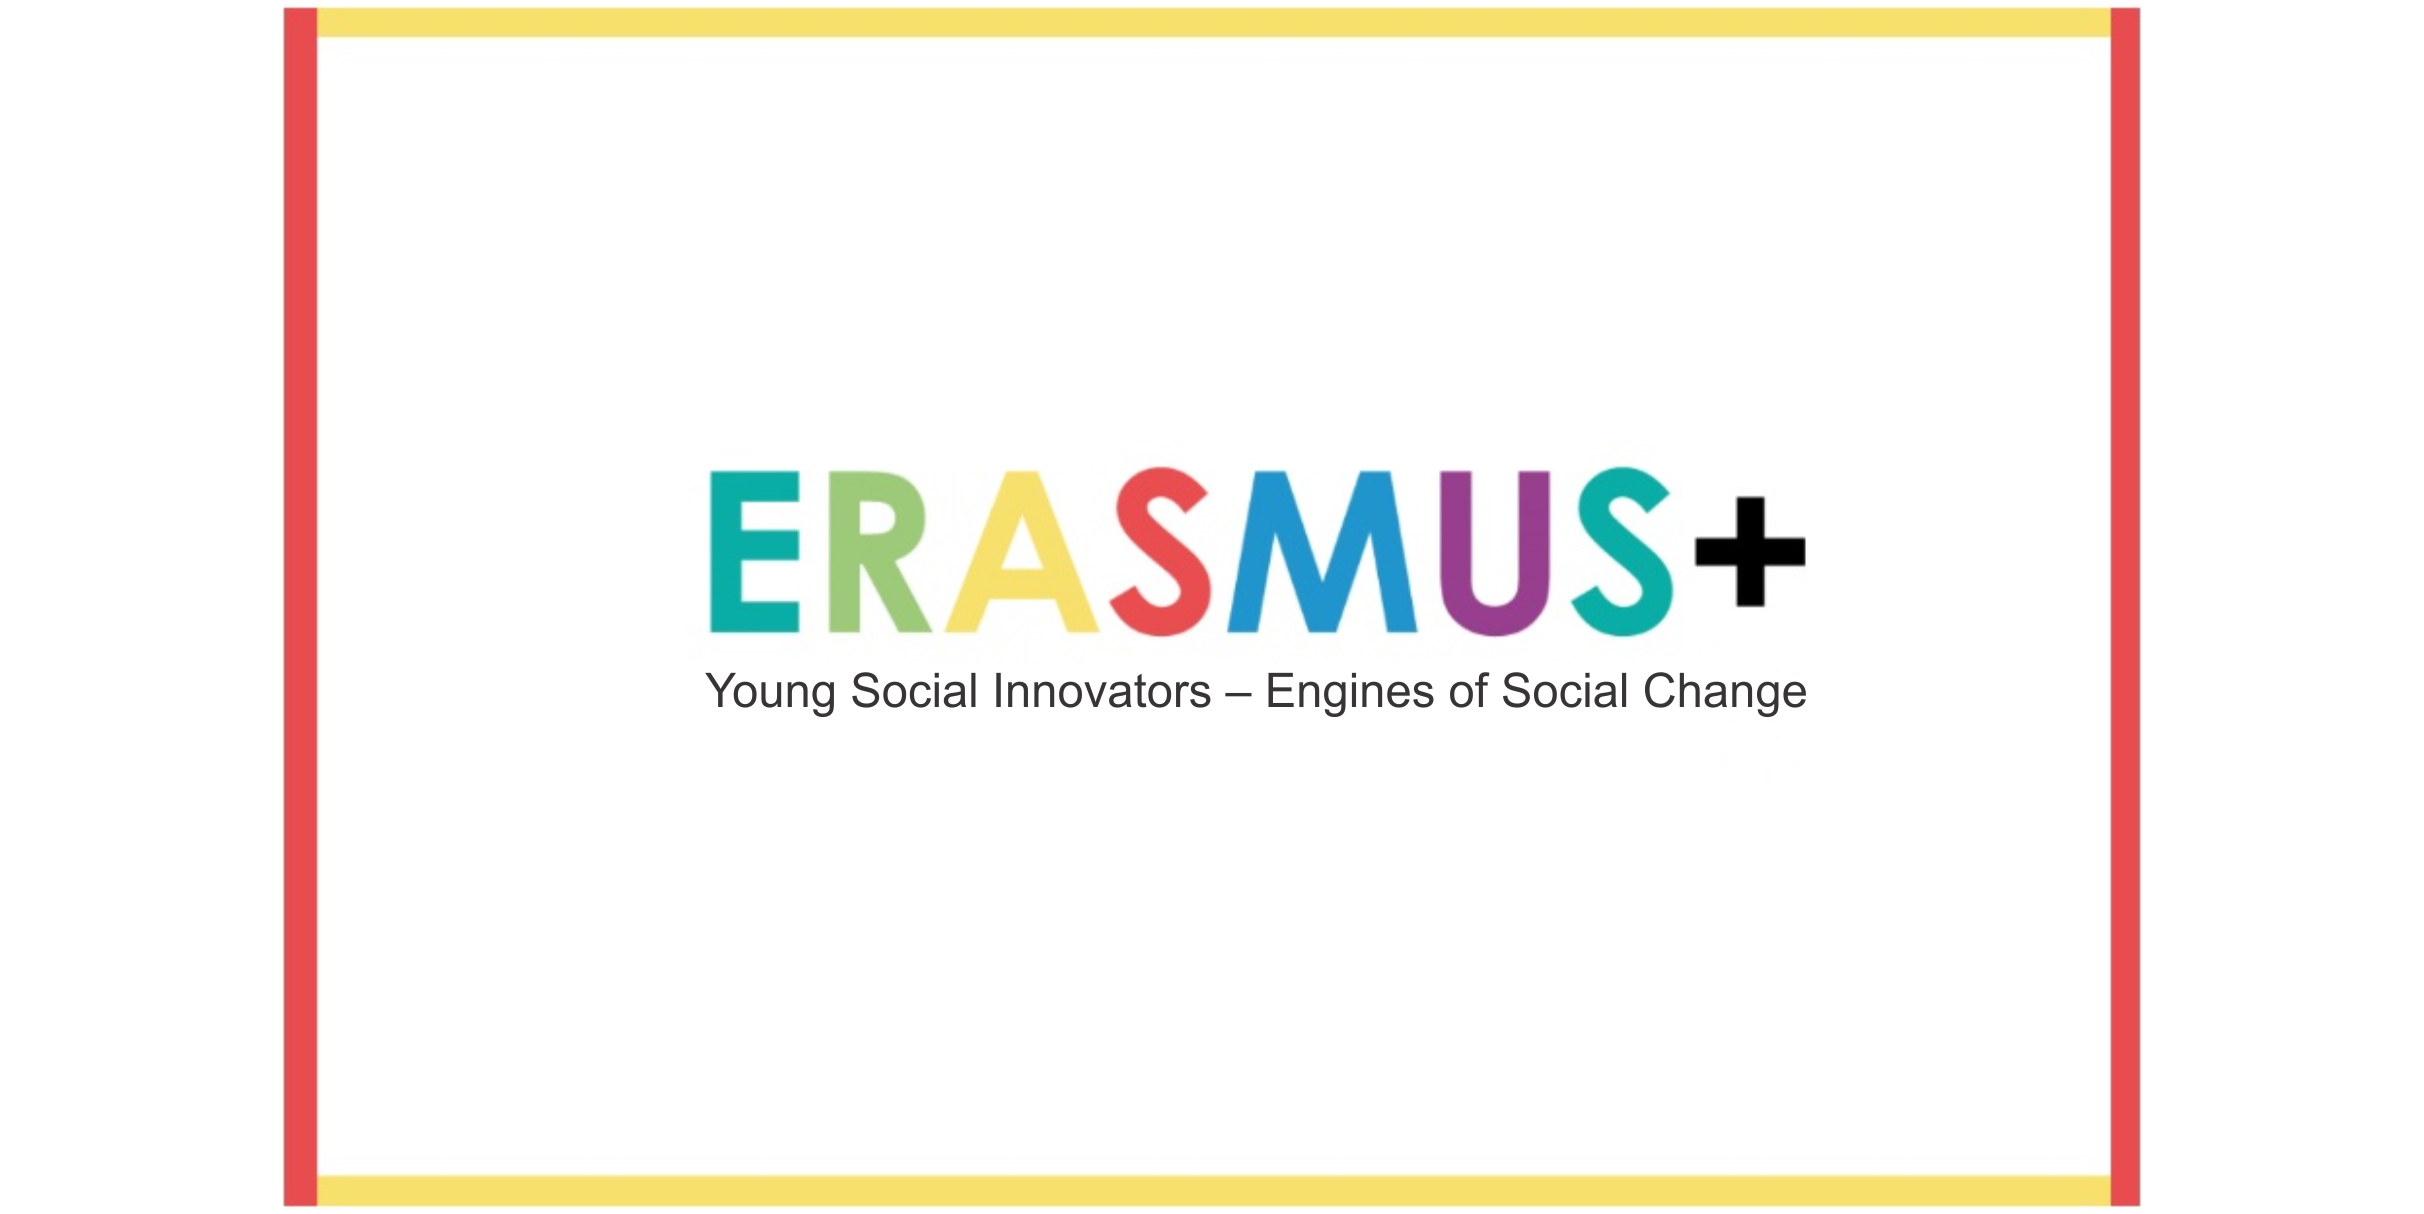 Young Social Innovators – Engines of Social Change